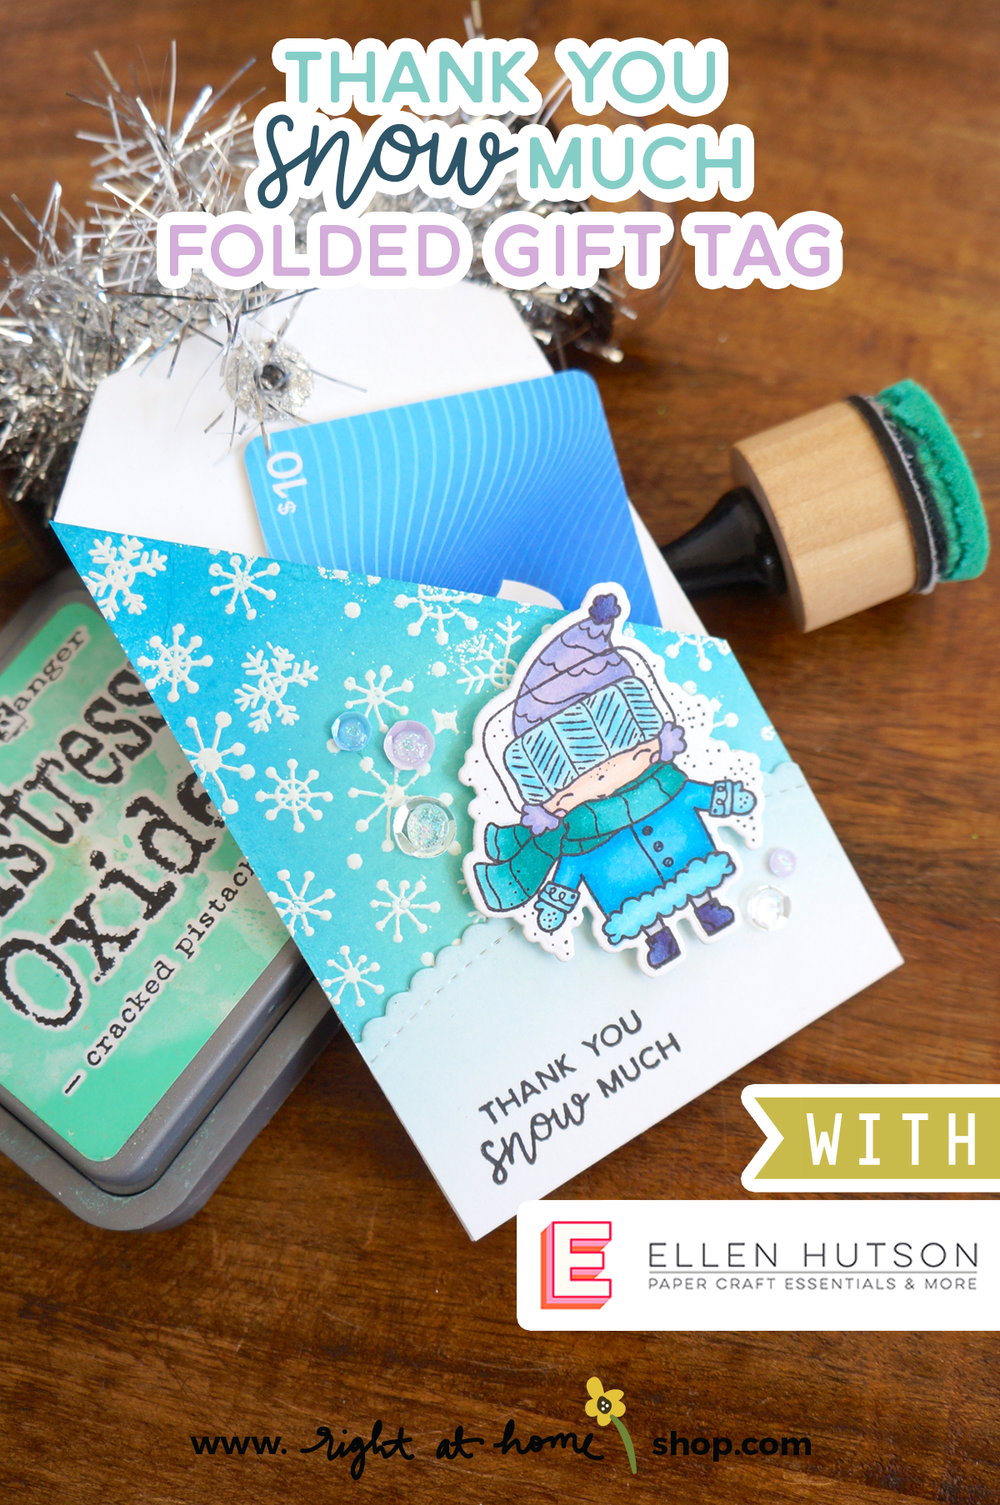 Visit my post for this quick and easy, DIY winter gift tag! Created by Right at Home for the 12 Tags of Christmas 2018 with Ellen Hutson LLC. Visit www.rightathomeshop.com/blog for more details.